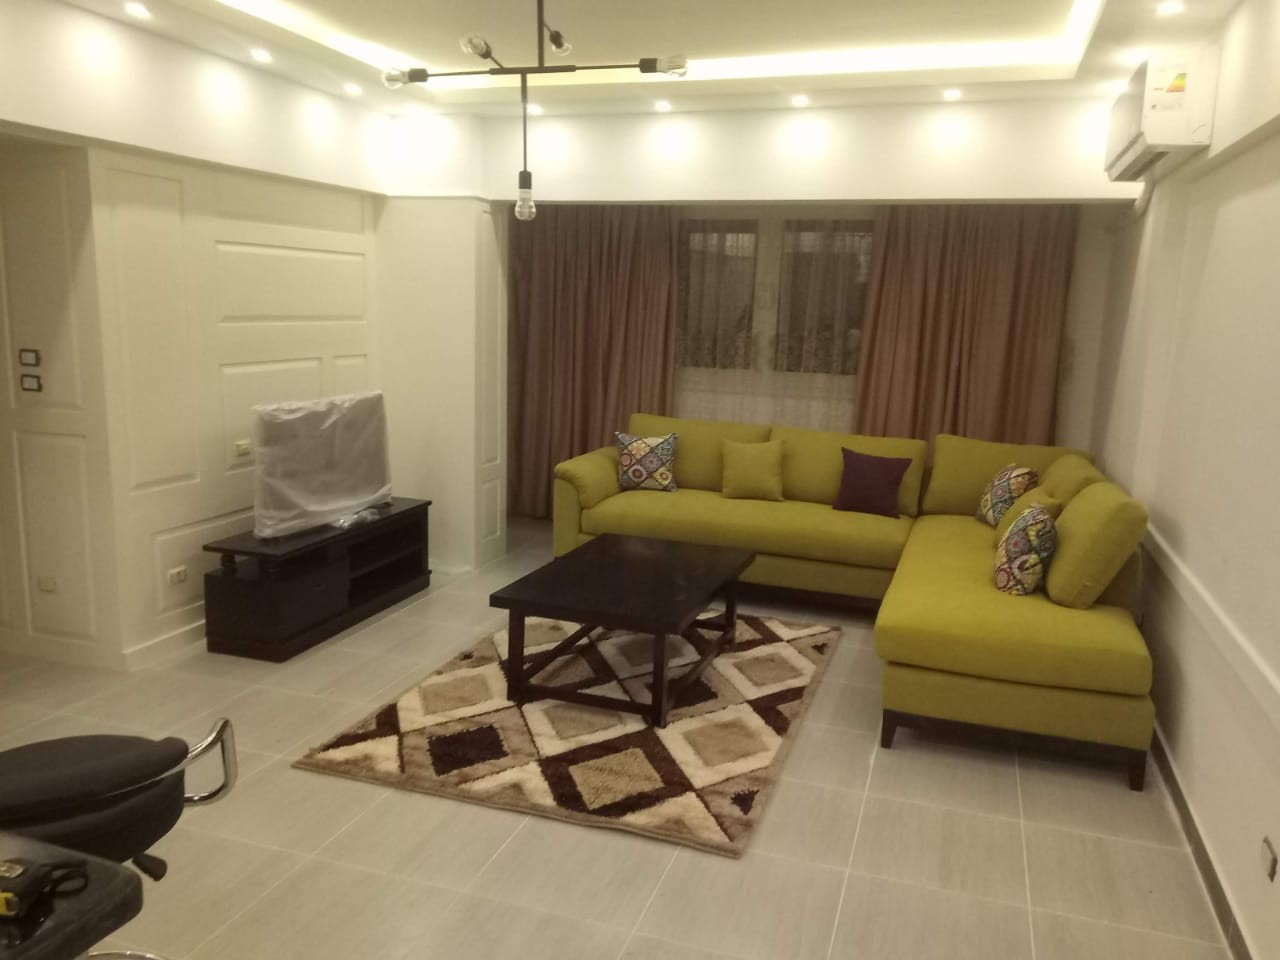 Fully Furnished Apartment For Rent In The Prime Location Of Degla - 4915 Featured Image